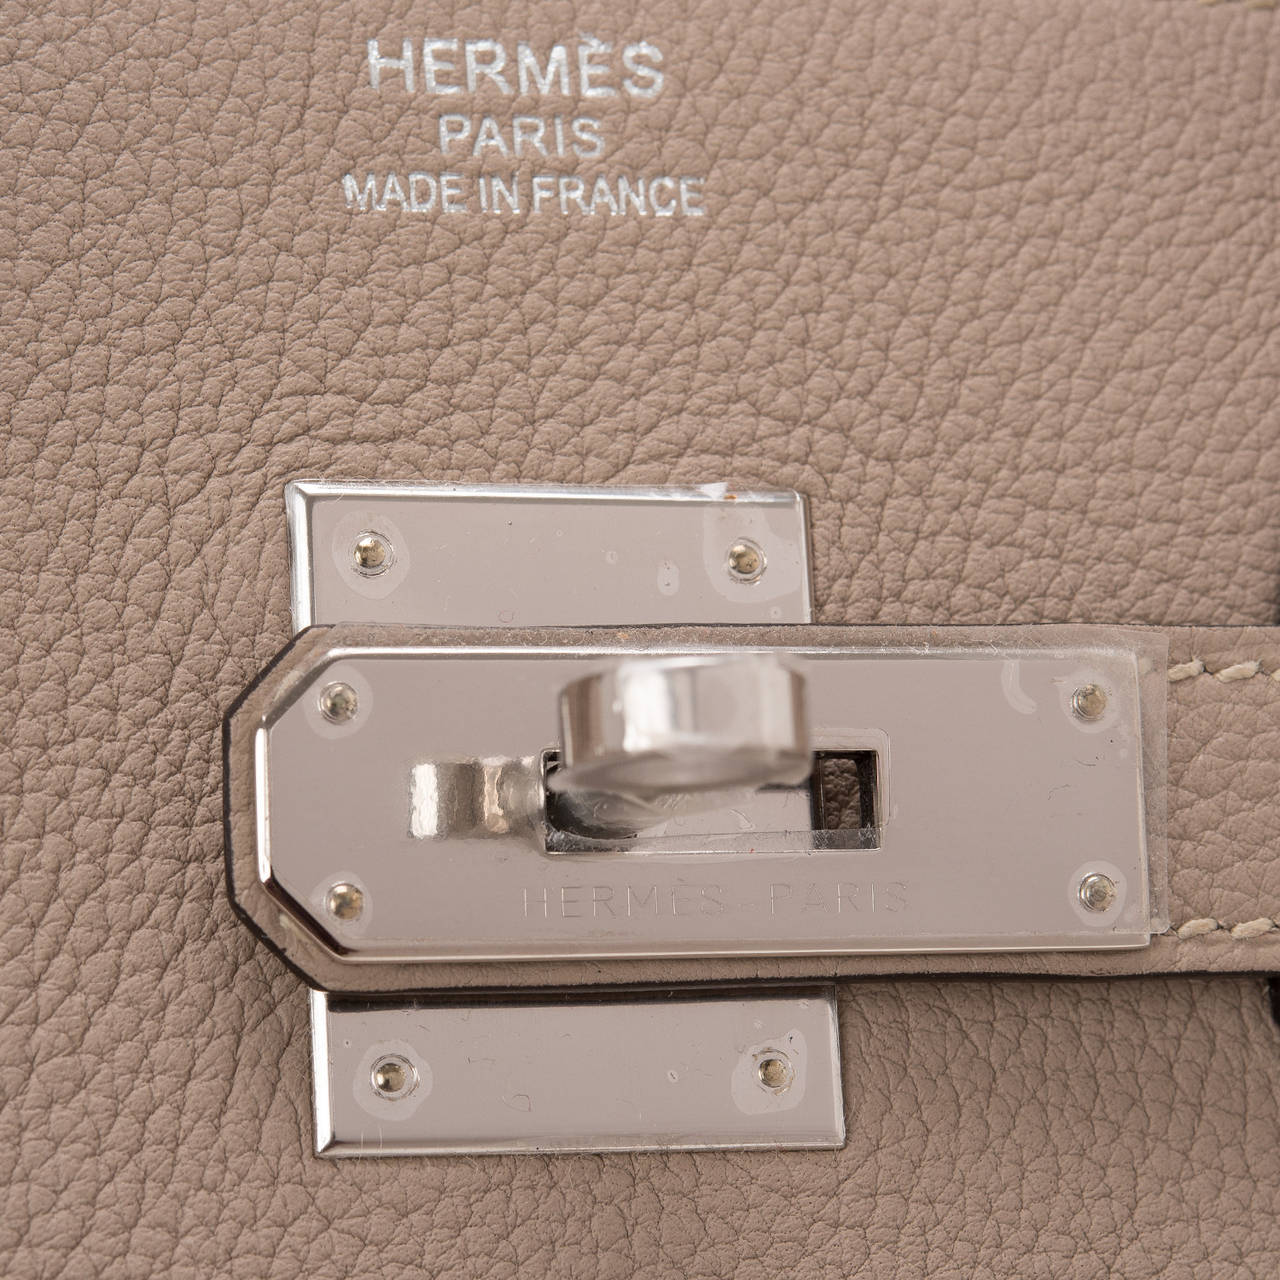 fake hermes birkin bag for sale - Hermes Gris Tourterelle Togo Birkin 35cm at 1stdibs